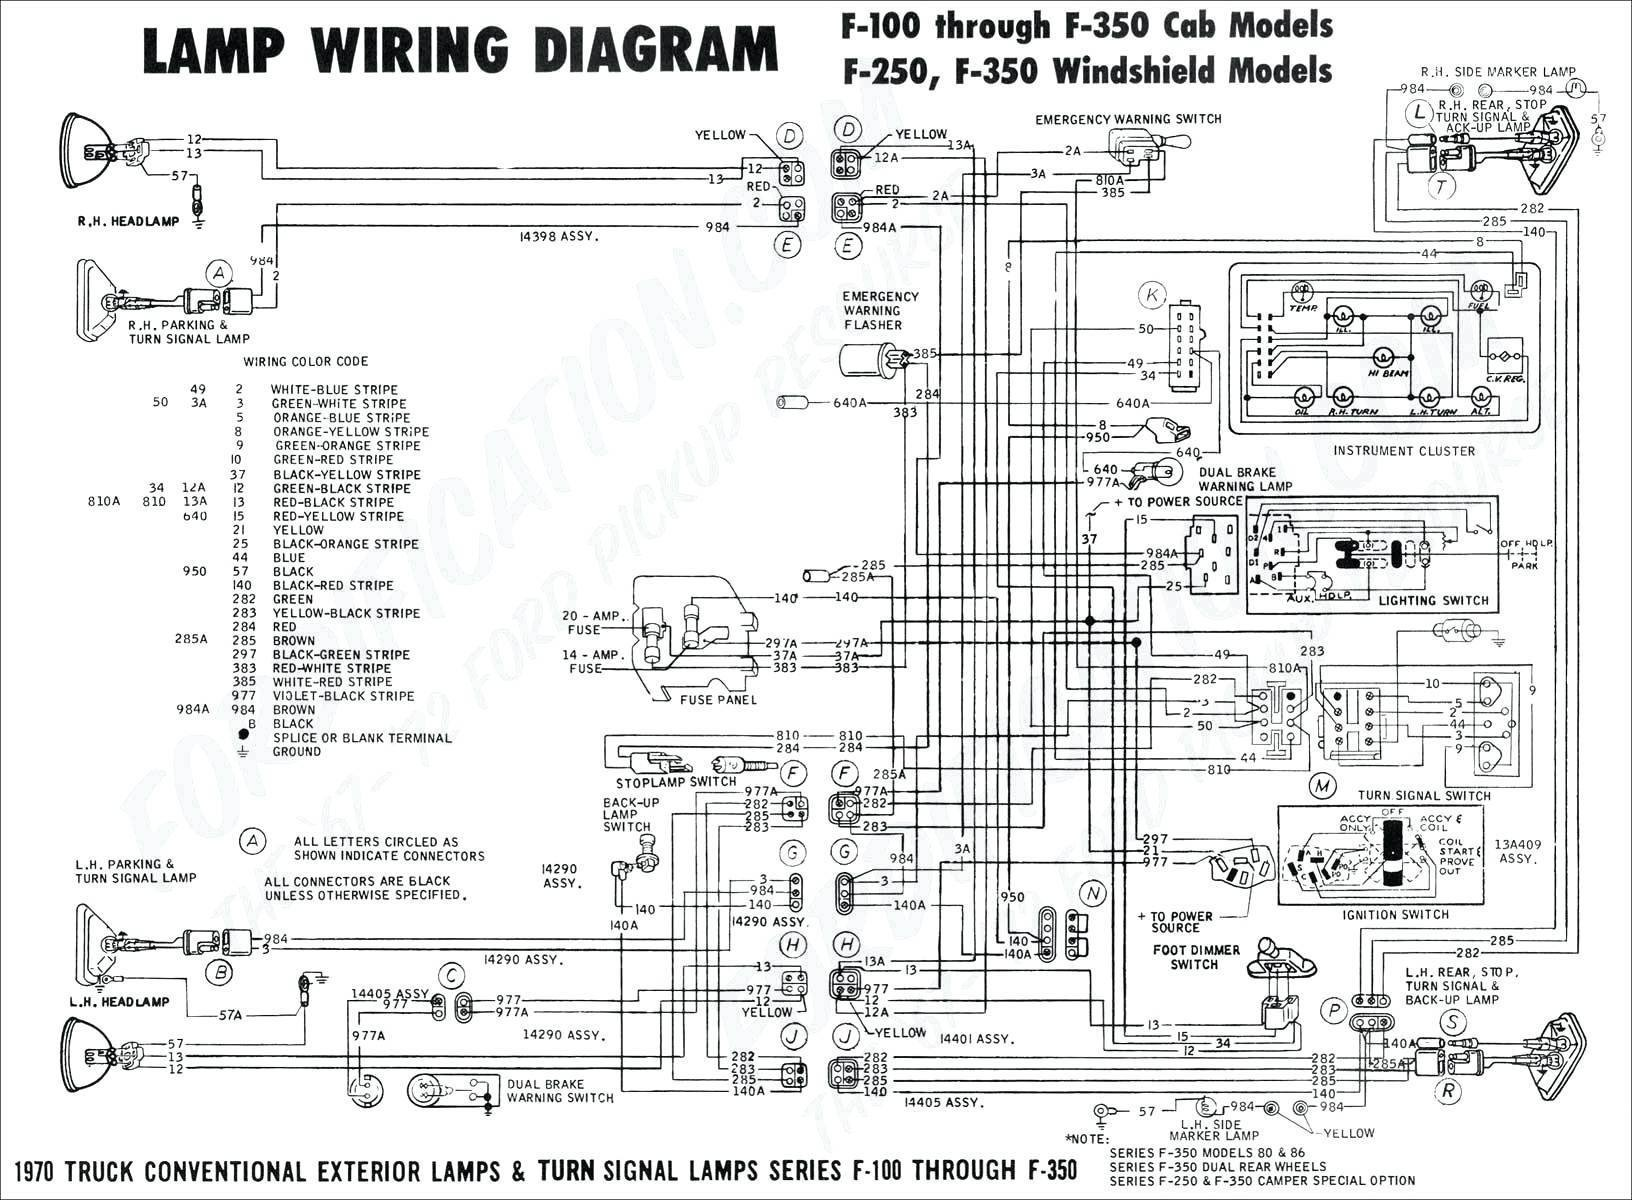 Dual Air Brake System Diagram 1995 Chevy Silverado Headlight Wiring Diagram Trusted Wiring Of Dual Air Brake System Diagram